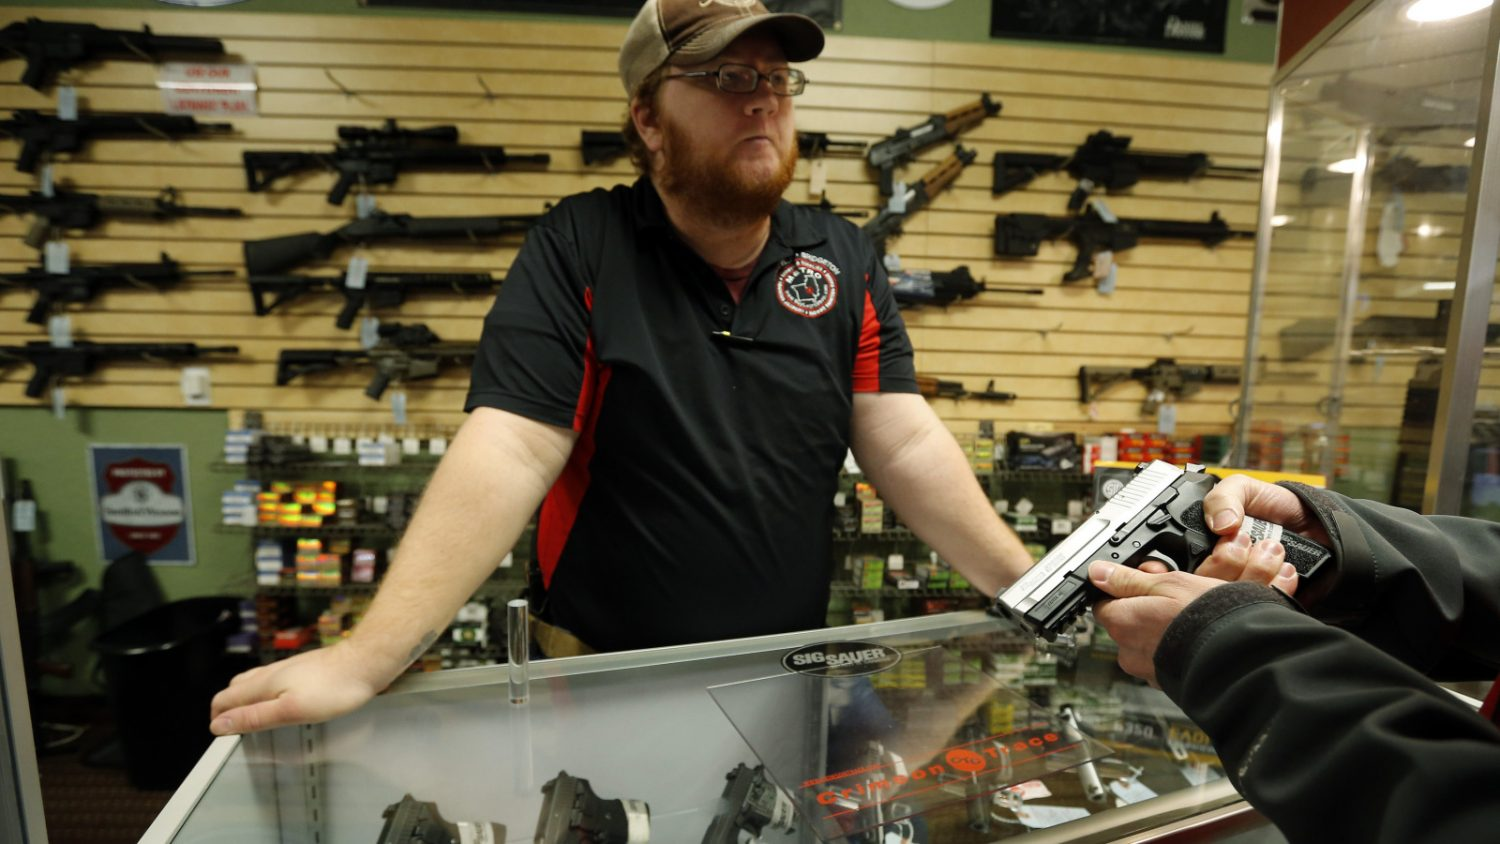 Metro+Shooting+Supplies%27+employee+Chris+Cox+speaks+to+a+customer+about+the+purchase+of+a+9mm+handgun+in+Bridgeton%2C+Missouri%2C+November+13%2C+2014.+The+store+has+reported+an+increase+in+gun+sales+as+the+area+waits+for+a+grand+jury+to+reach+a+decision+this+month+on+whether+to+indict+Darren+Wilson%2C+the+white+police+officer+who+shot+and+killed+the+18-year-old+Mike+Brown%2C+who+was+black%2C+on+Aug.+9+in+the+St.+Louis+suburb+of+Ferguson.+REUTERS%2FJim+Young++%28UNITED+STATES+-+Tags%3A+CRIME+LAW+CIVIL+UNREST+POLITICS%29+-+RTR4E2I1